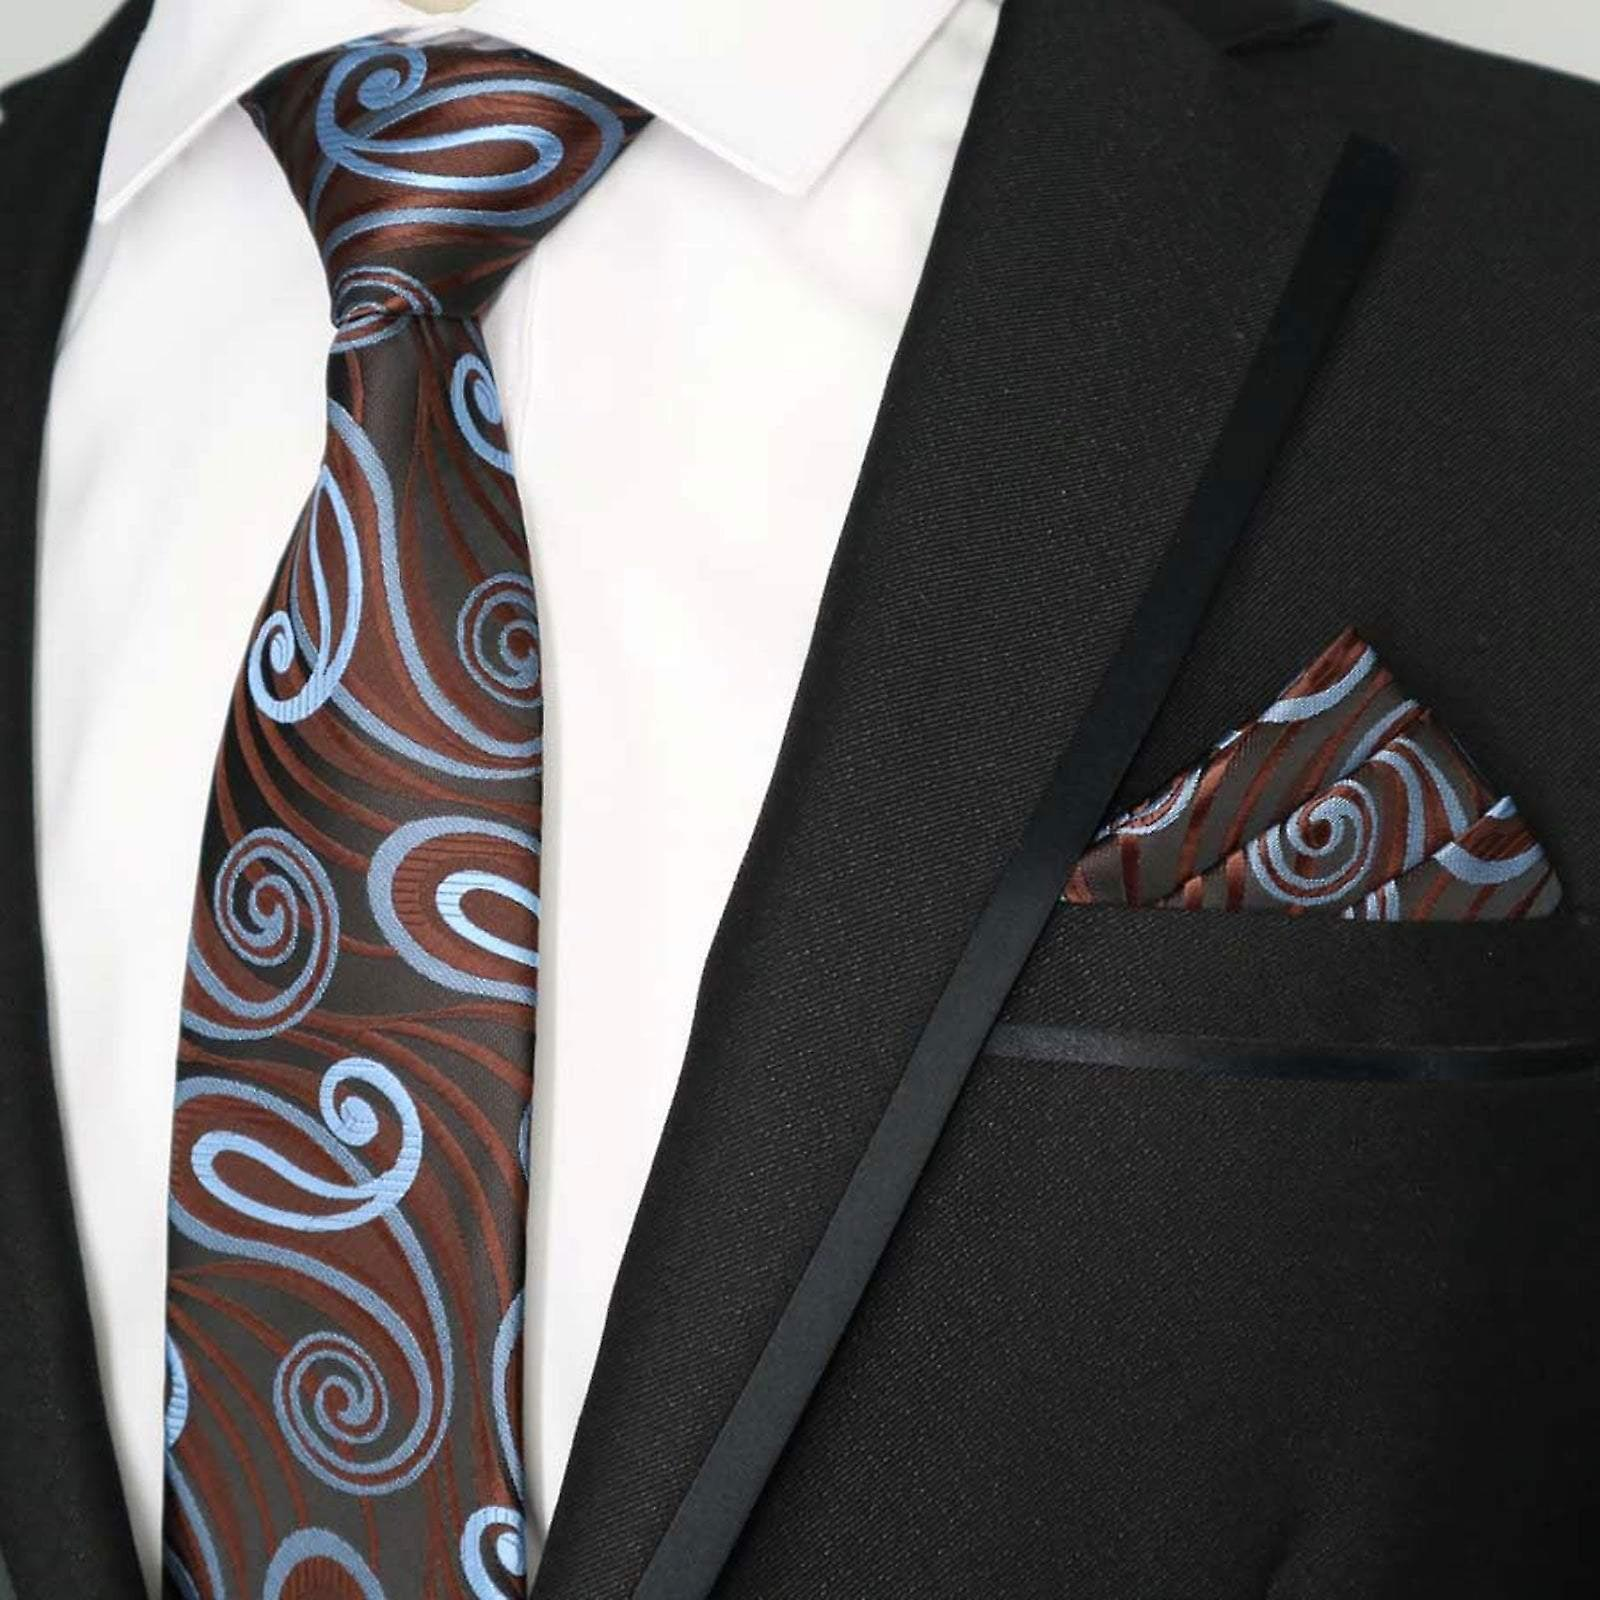 Brown & blue turquoise swirl dinner tie & pocket square